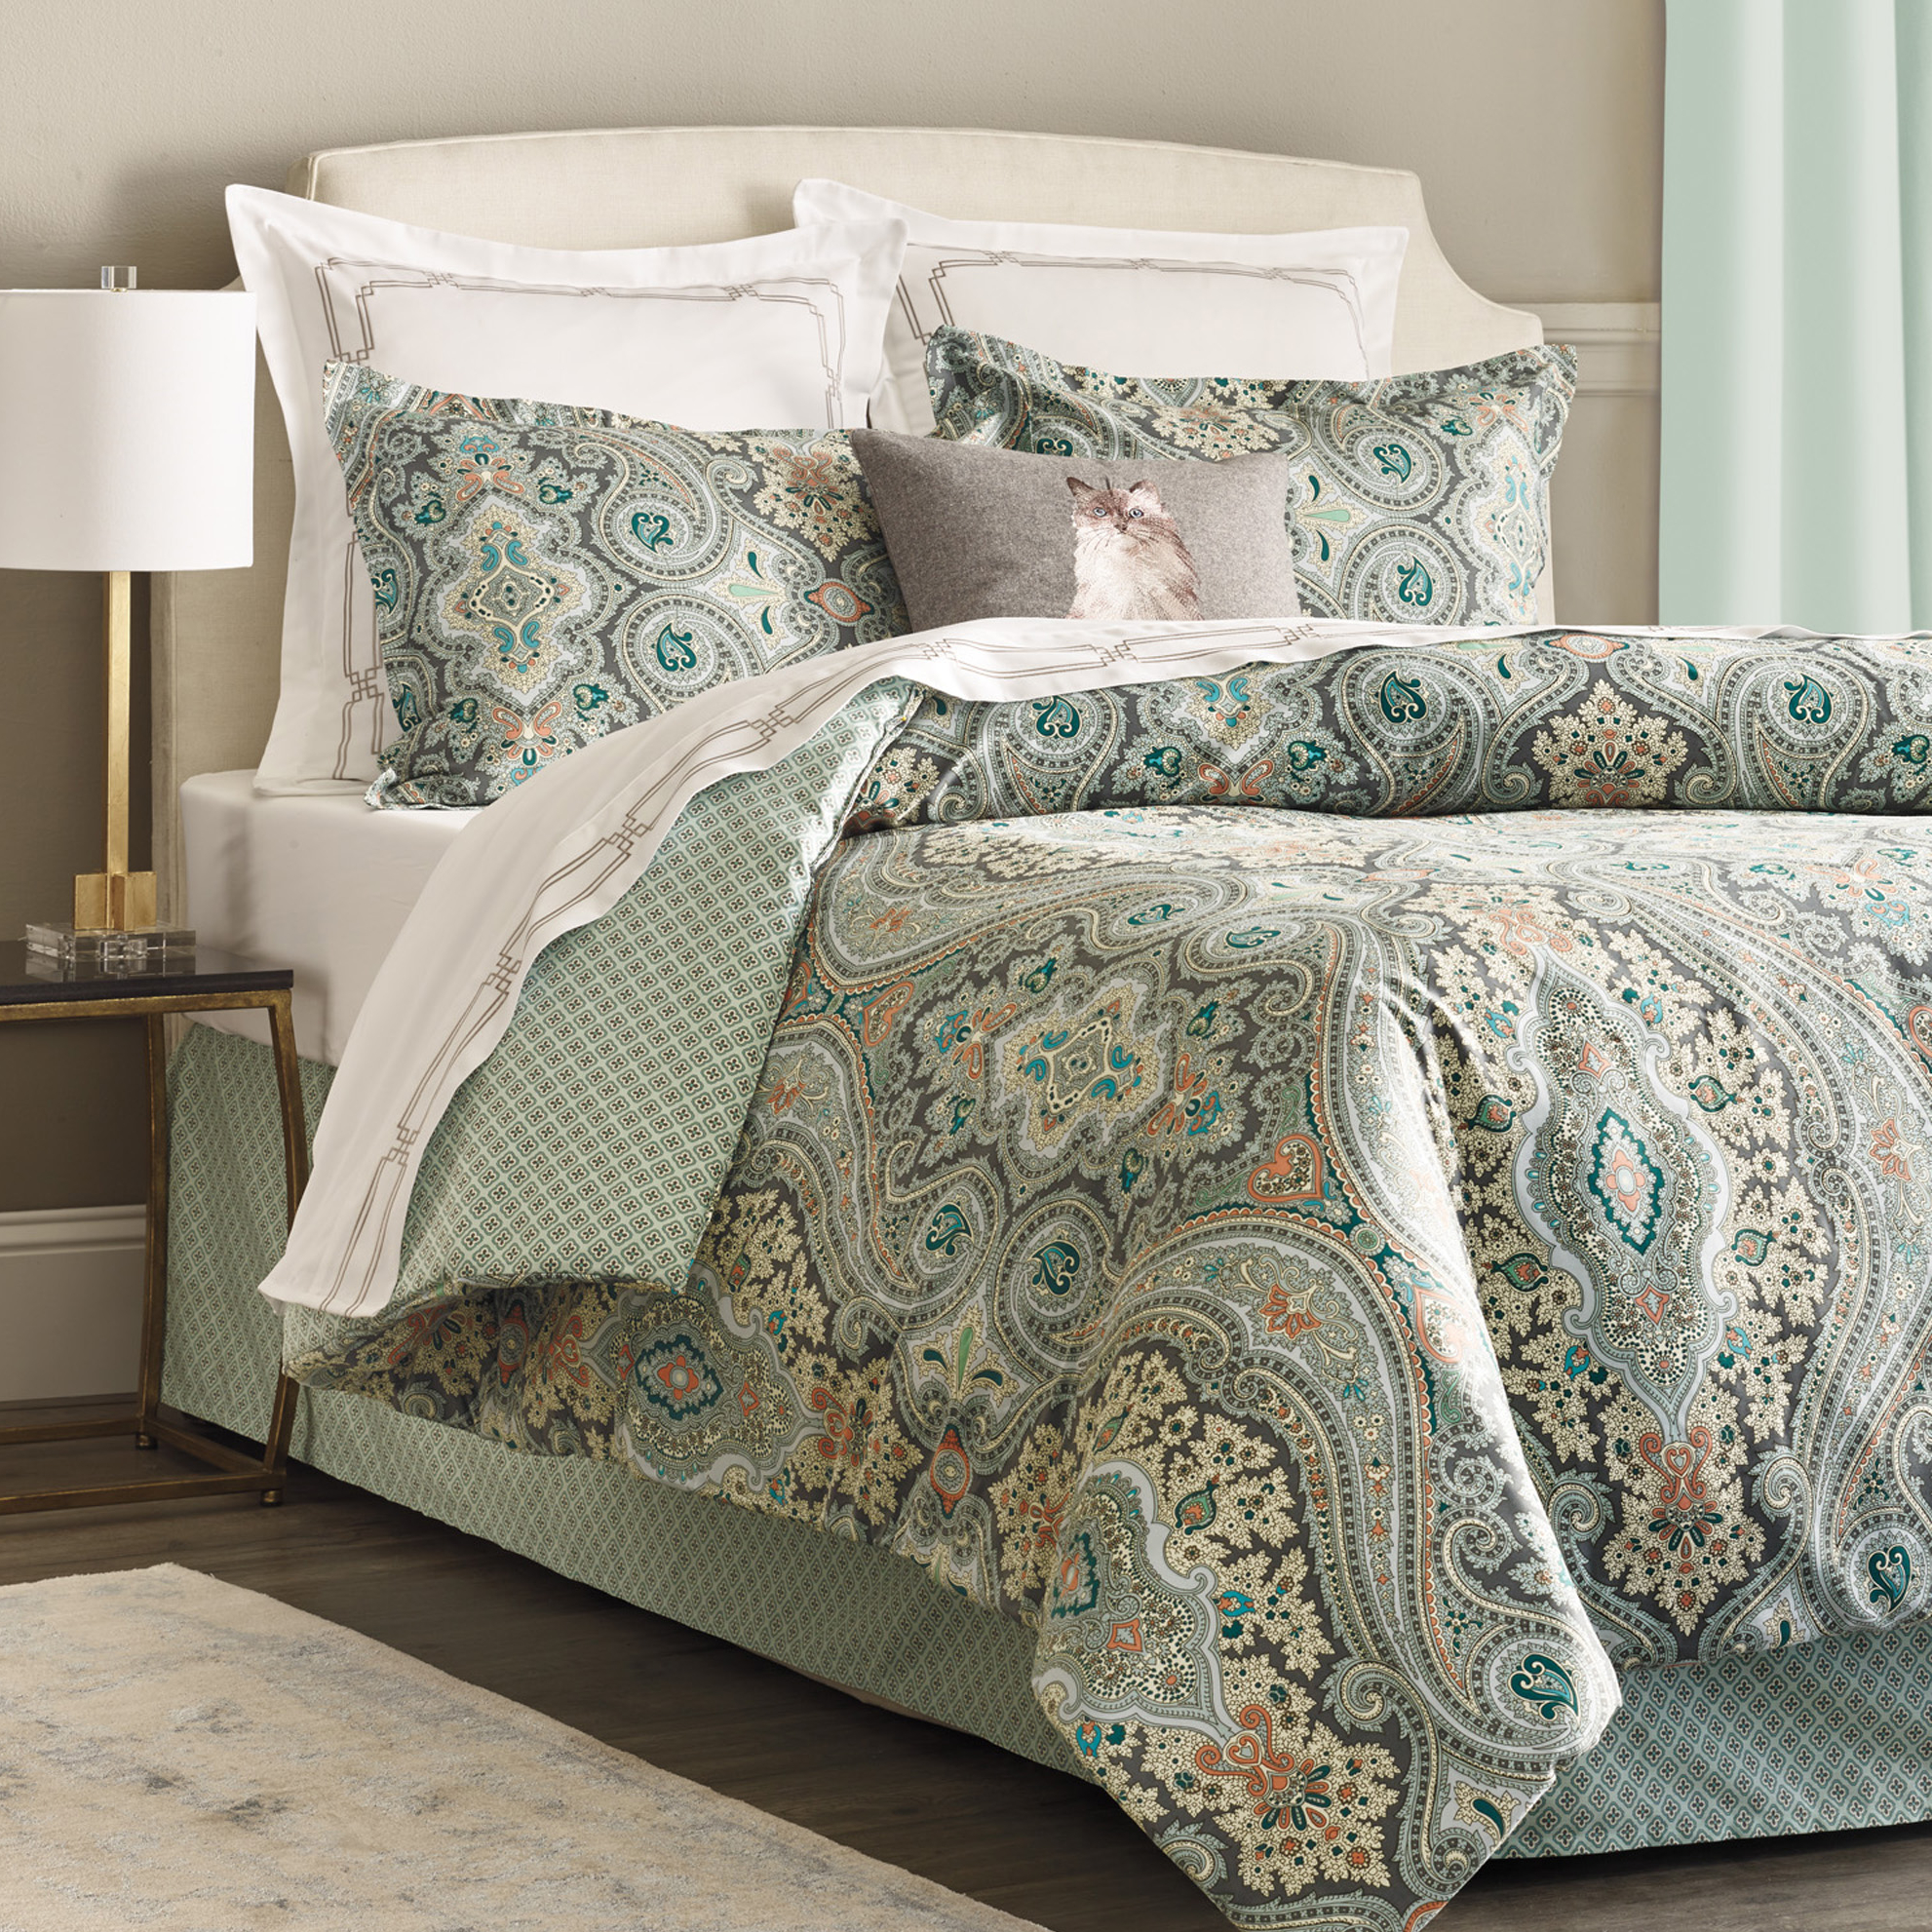 Finley 4-Piece Bedding Set